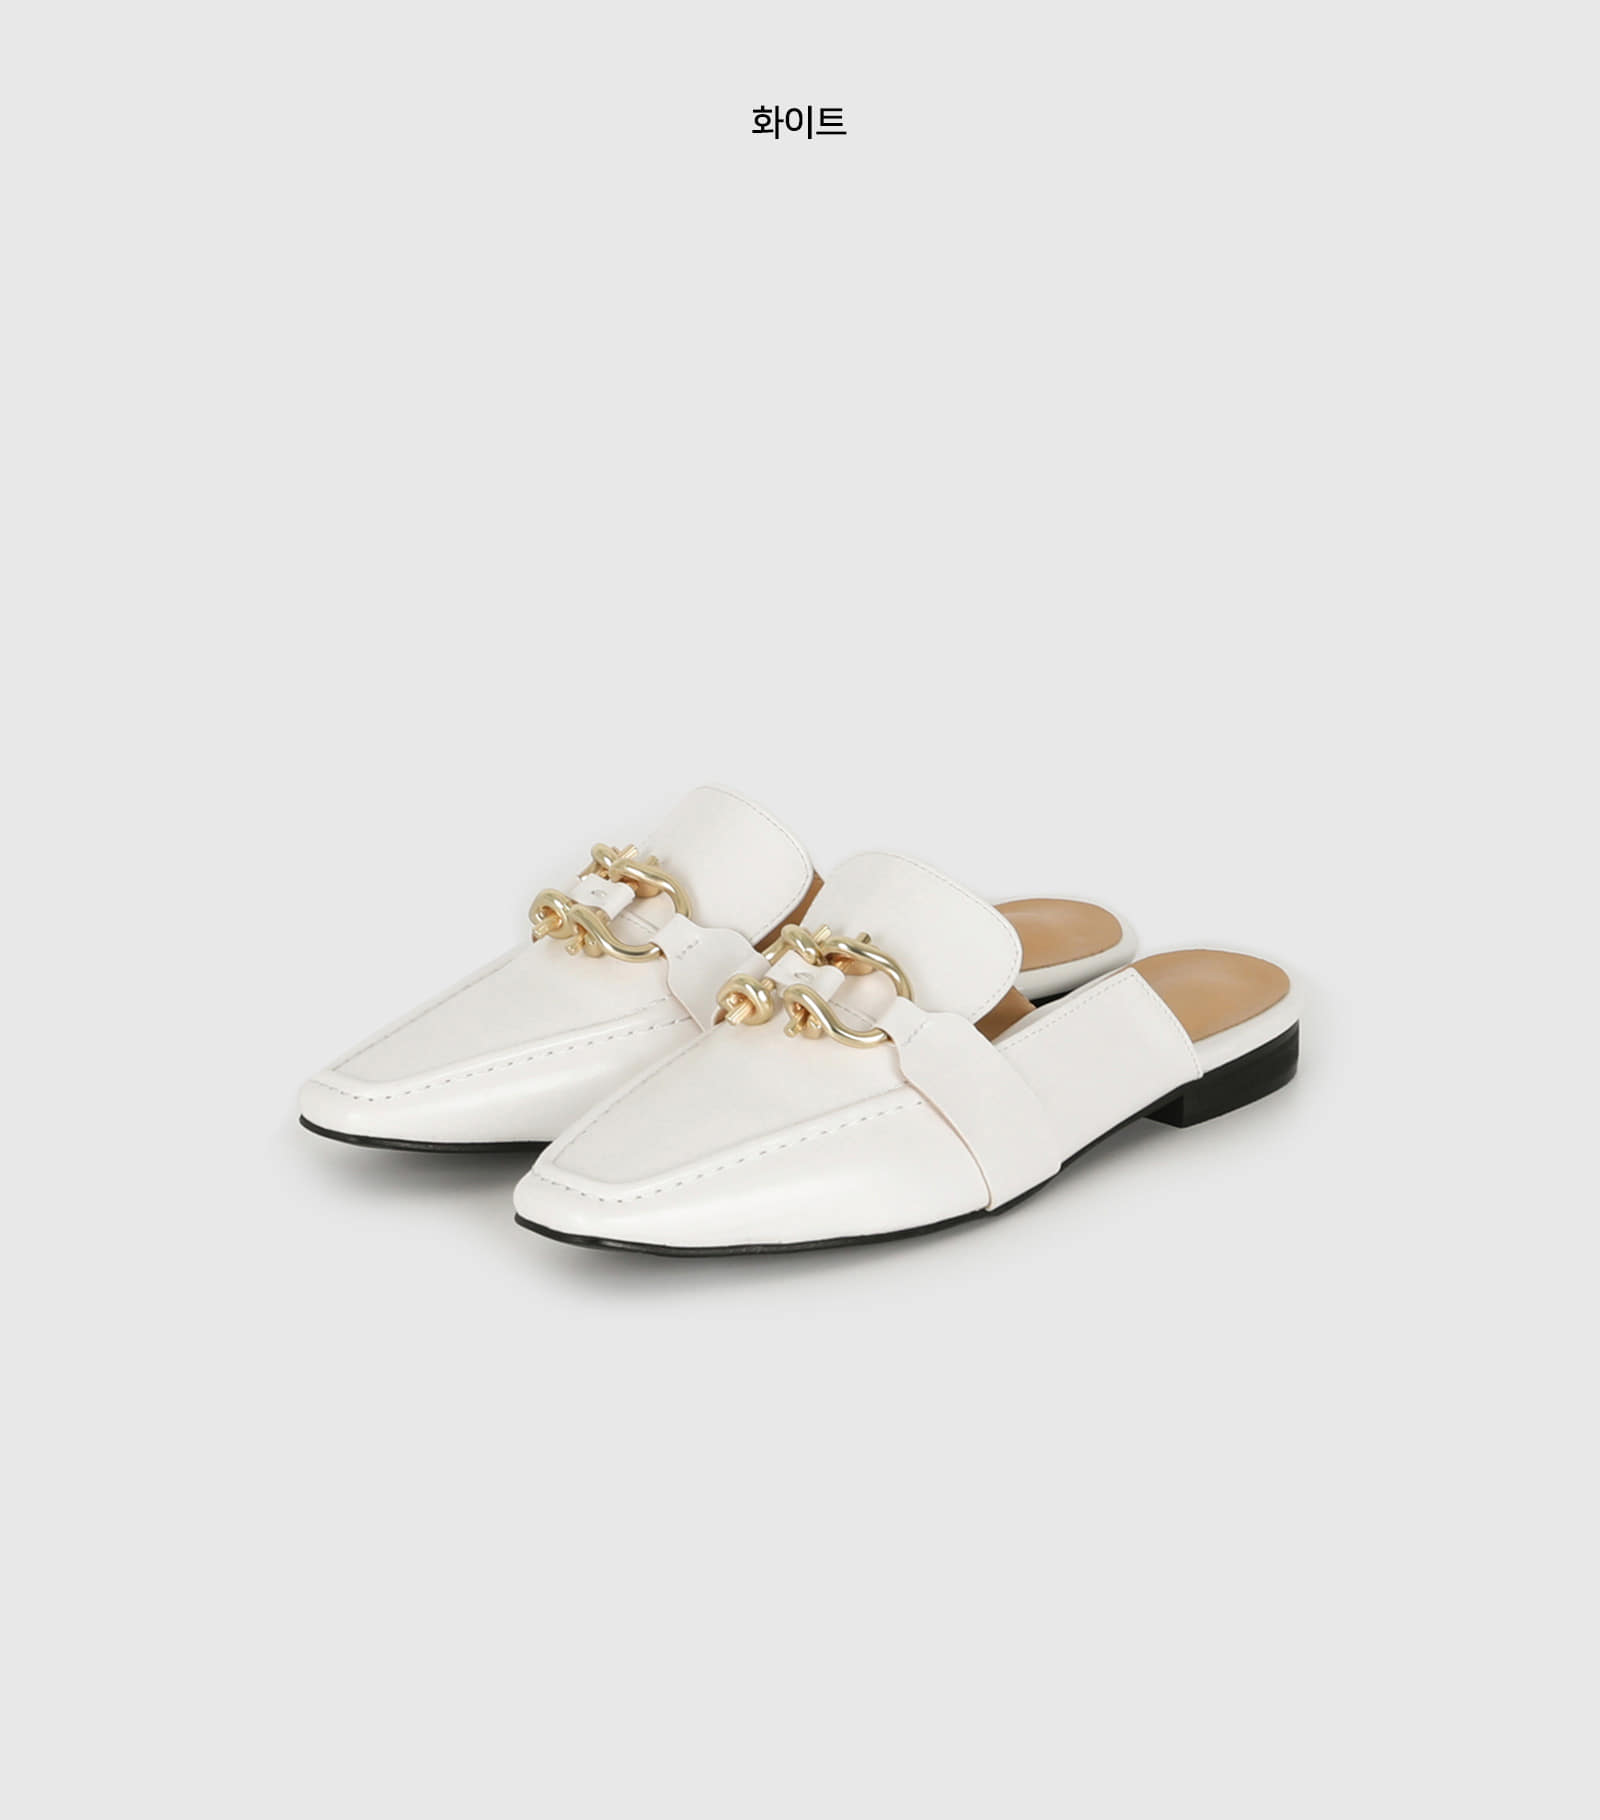 Point gold blogger mule